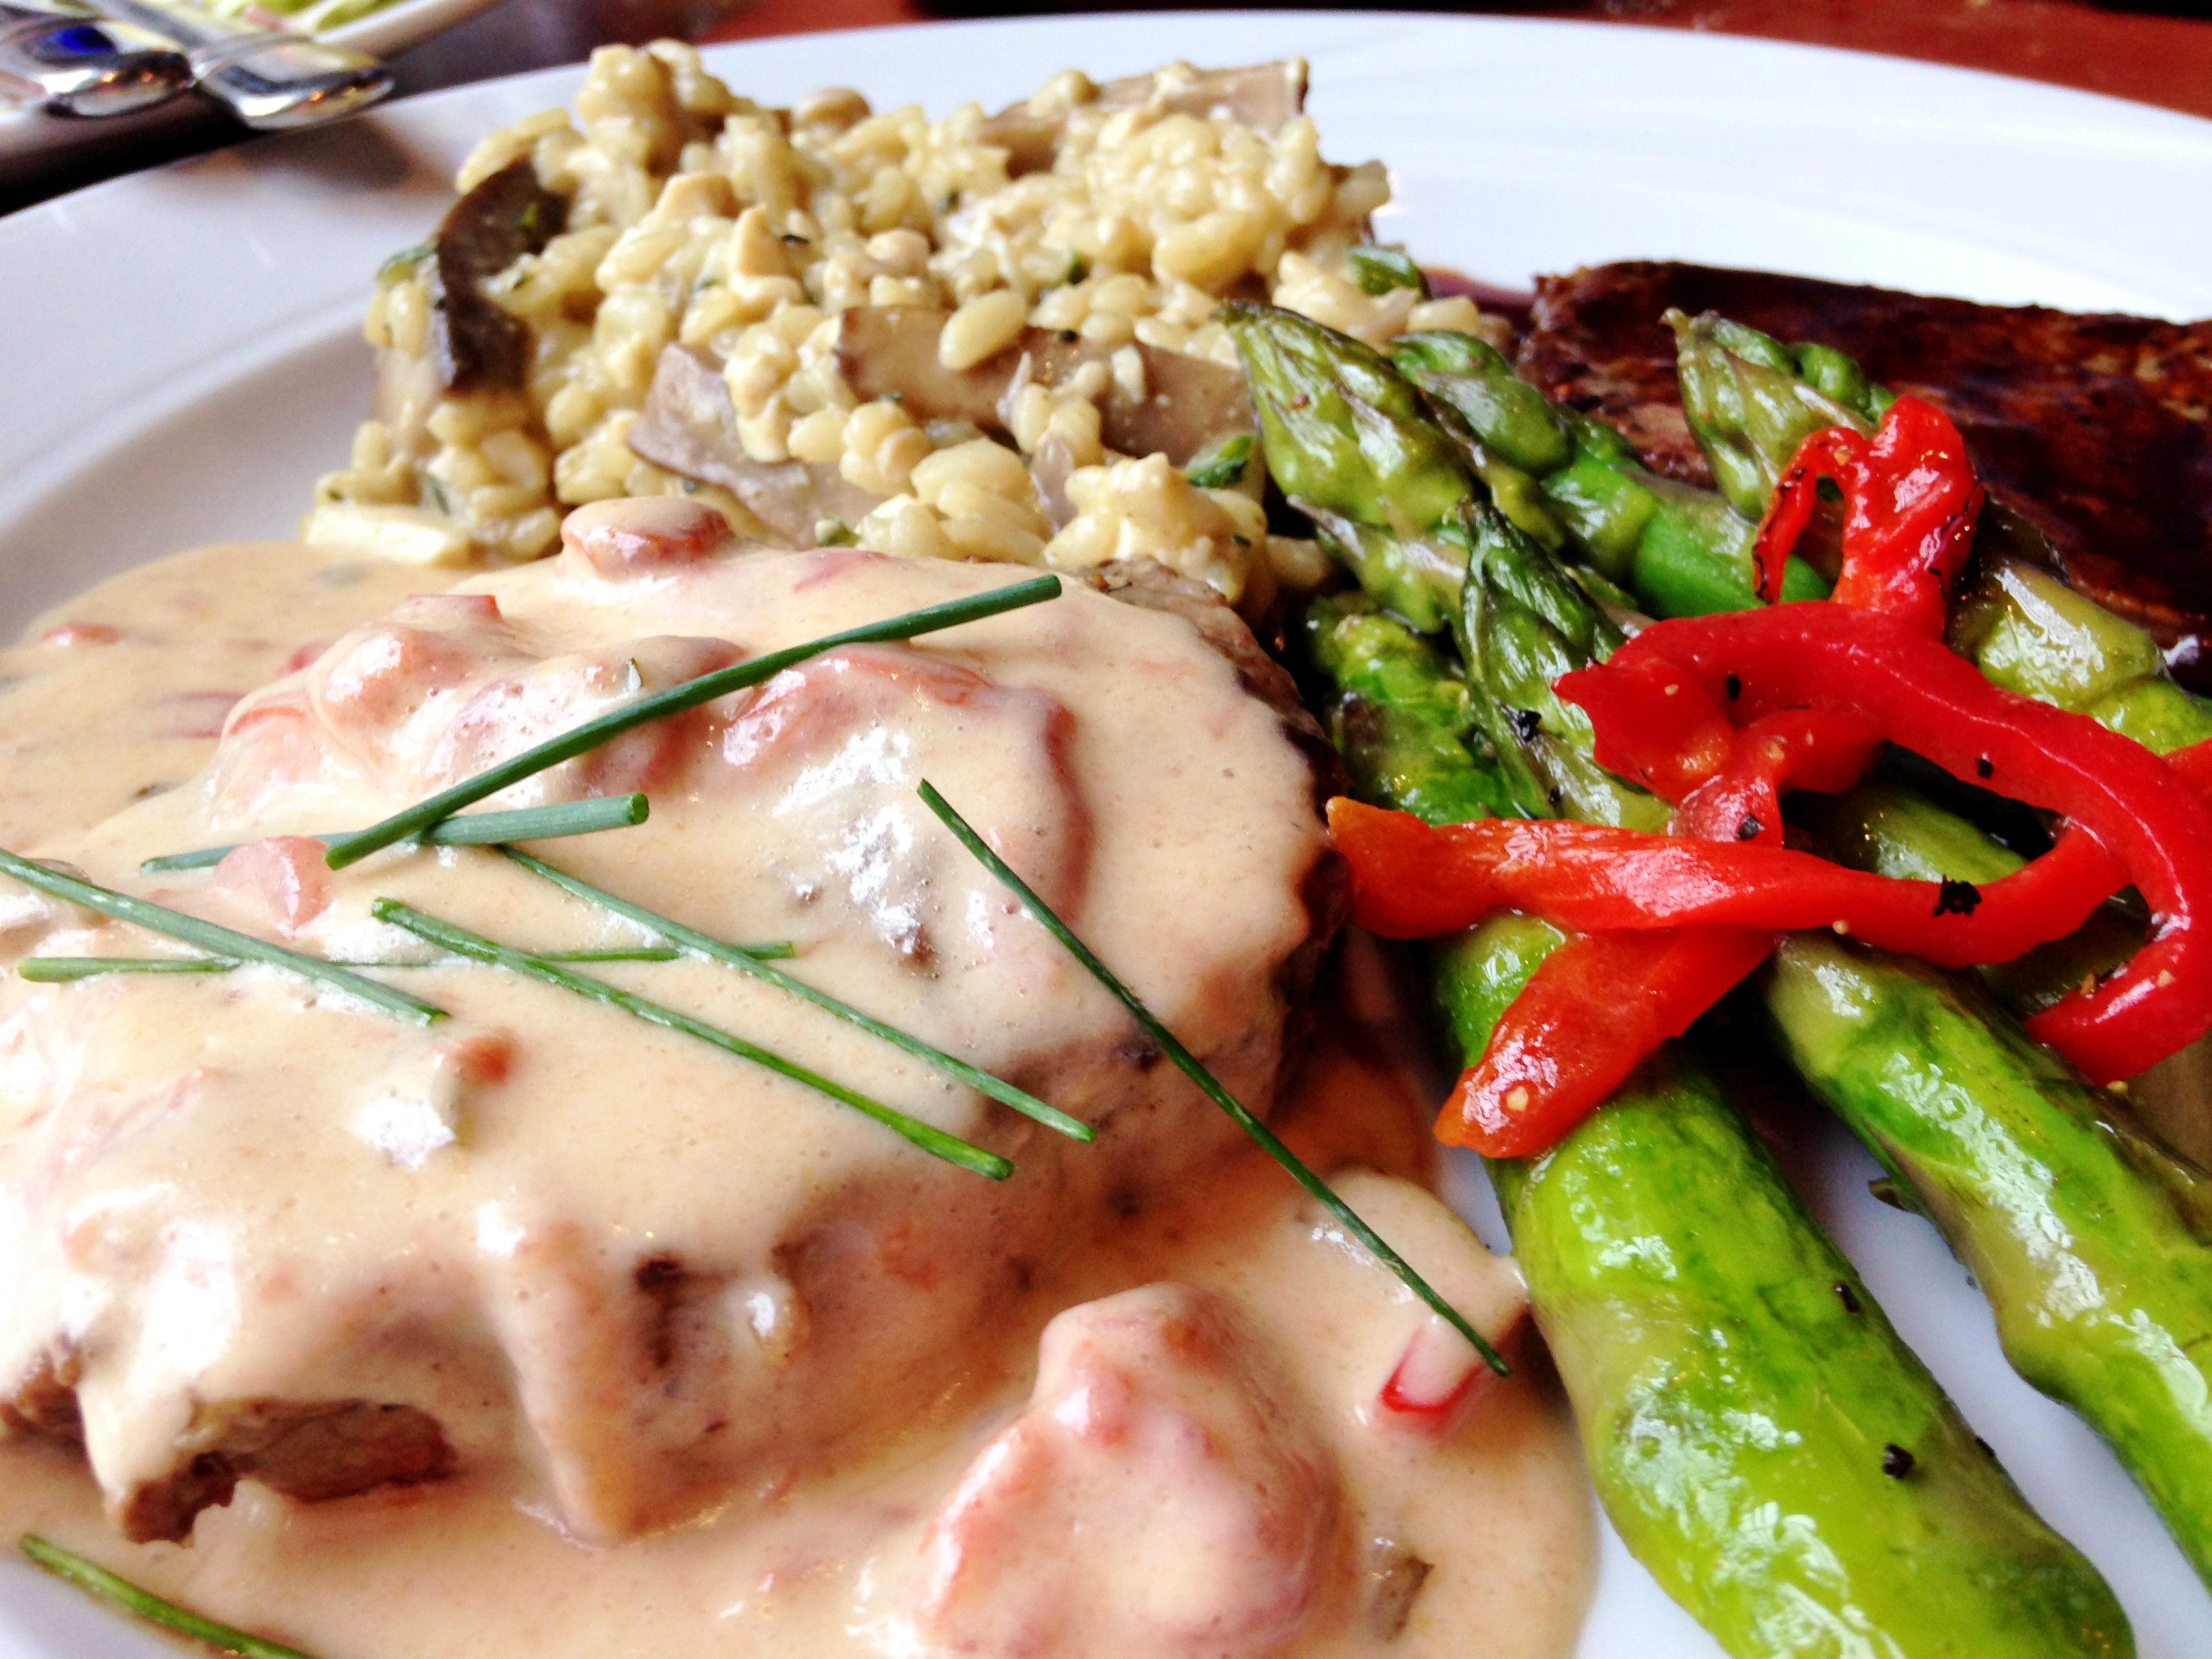 Bev's On the River steak with creole hollandaise sauce.